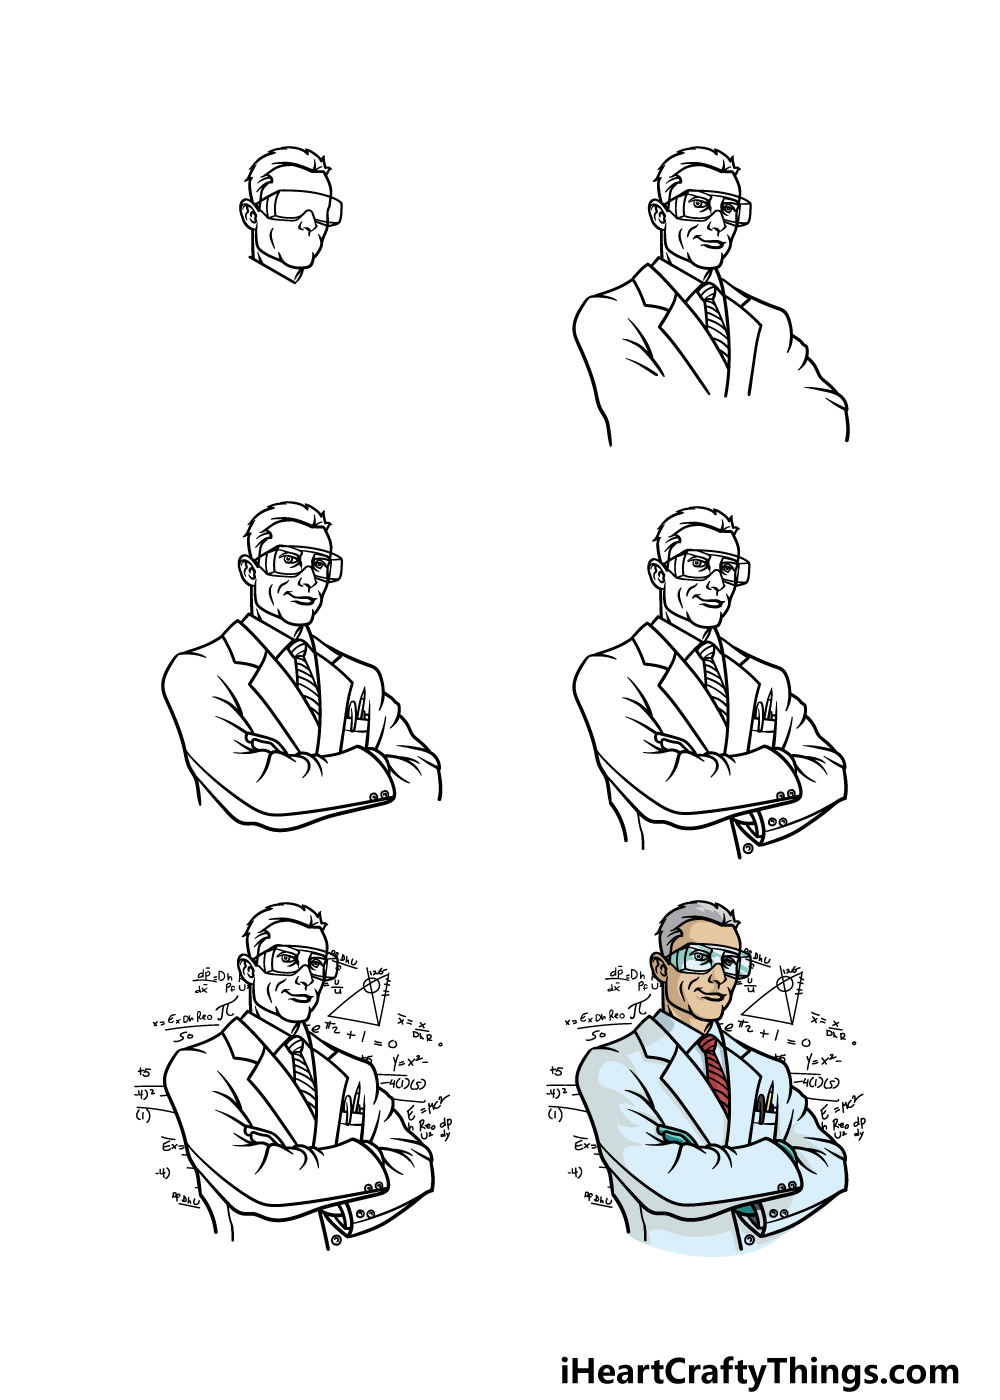 how to draw a scientist in 6 steps